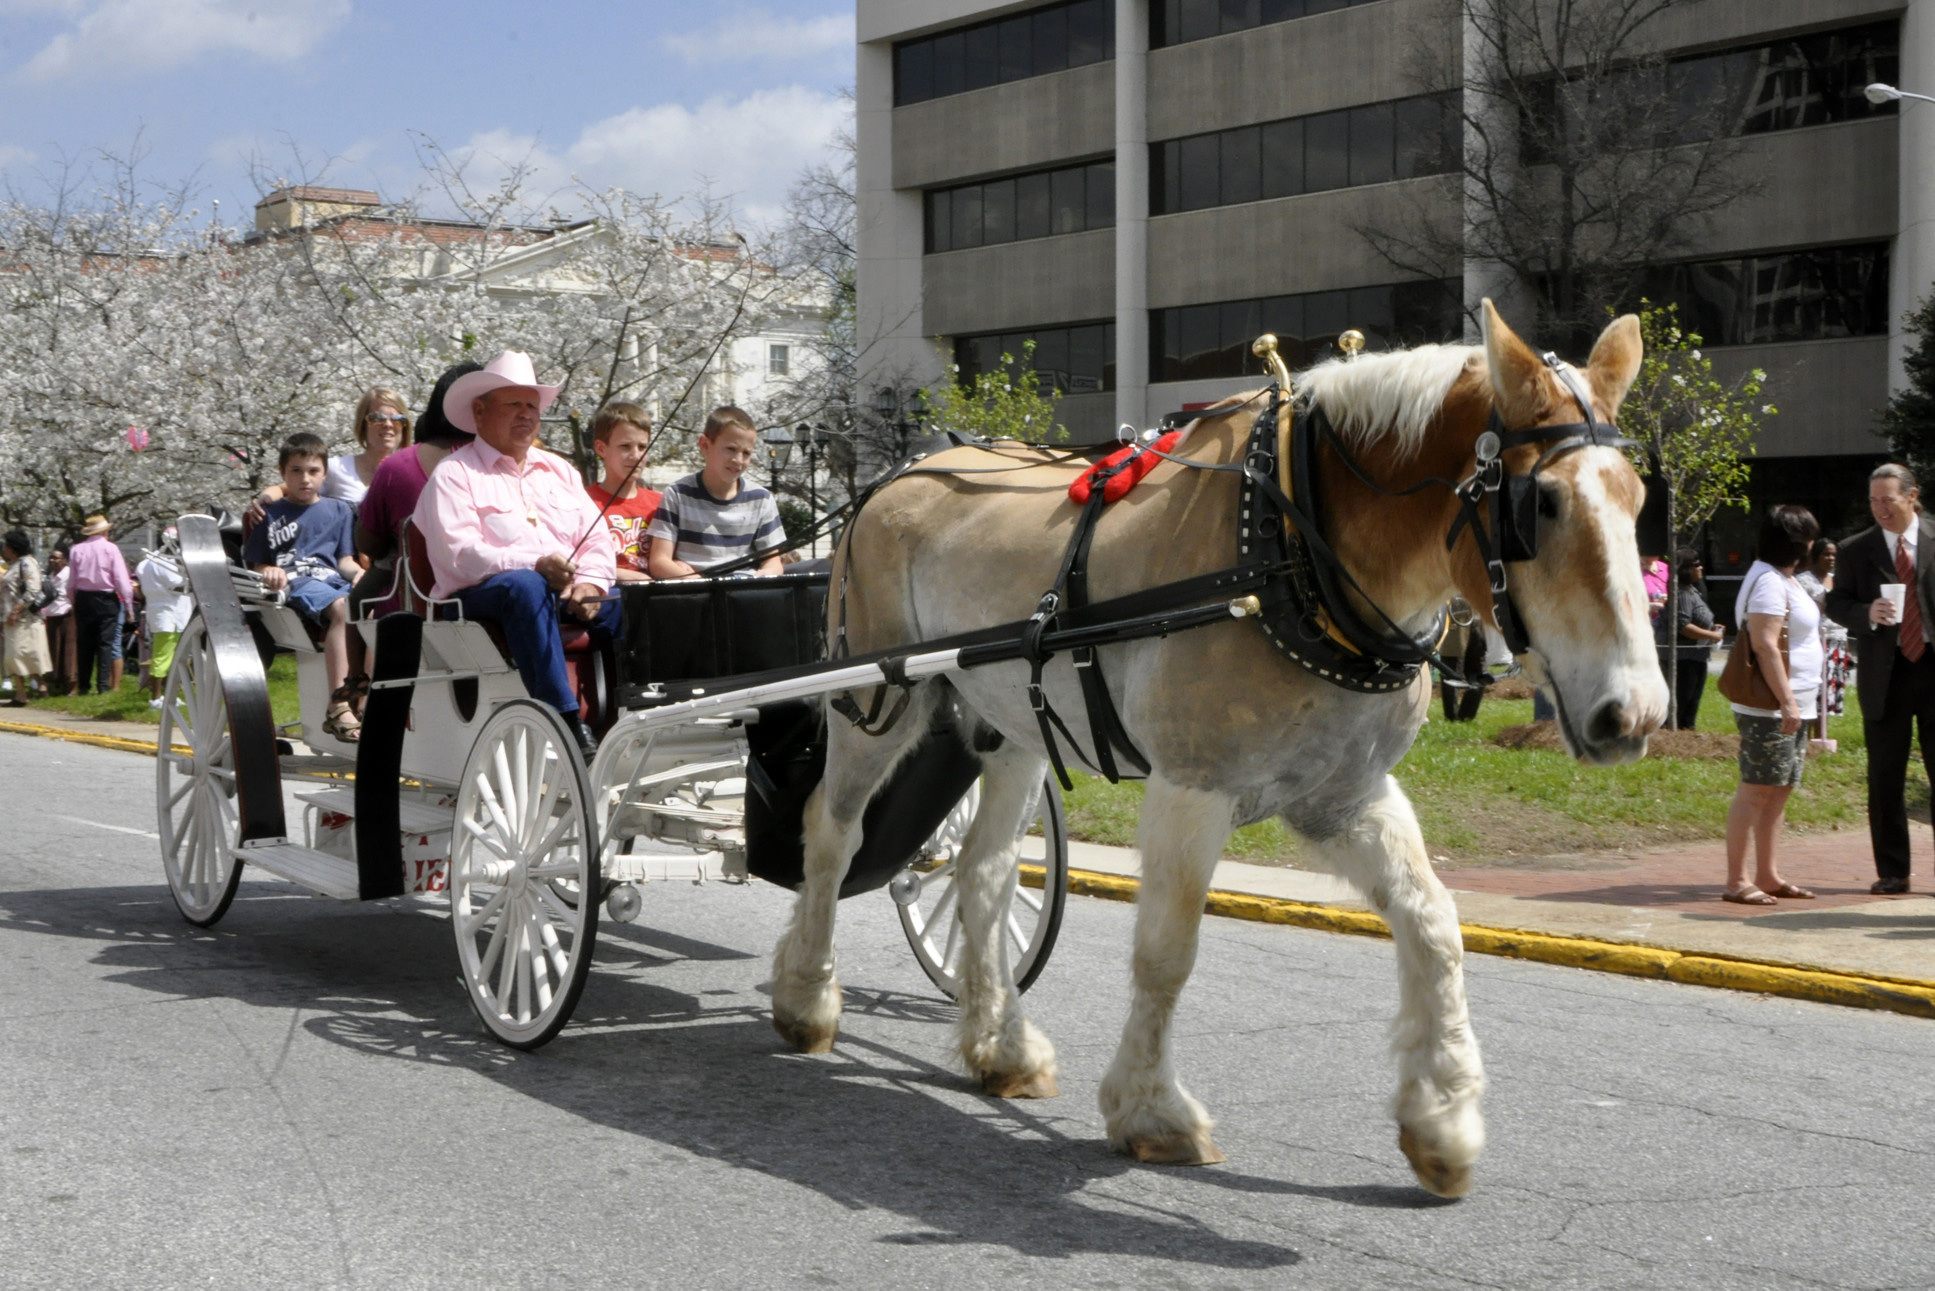 Enjoy horse-drawn carriage rides in Macon during the International Cherry Blossom Festival